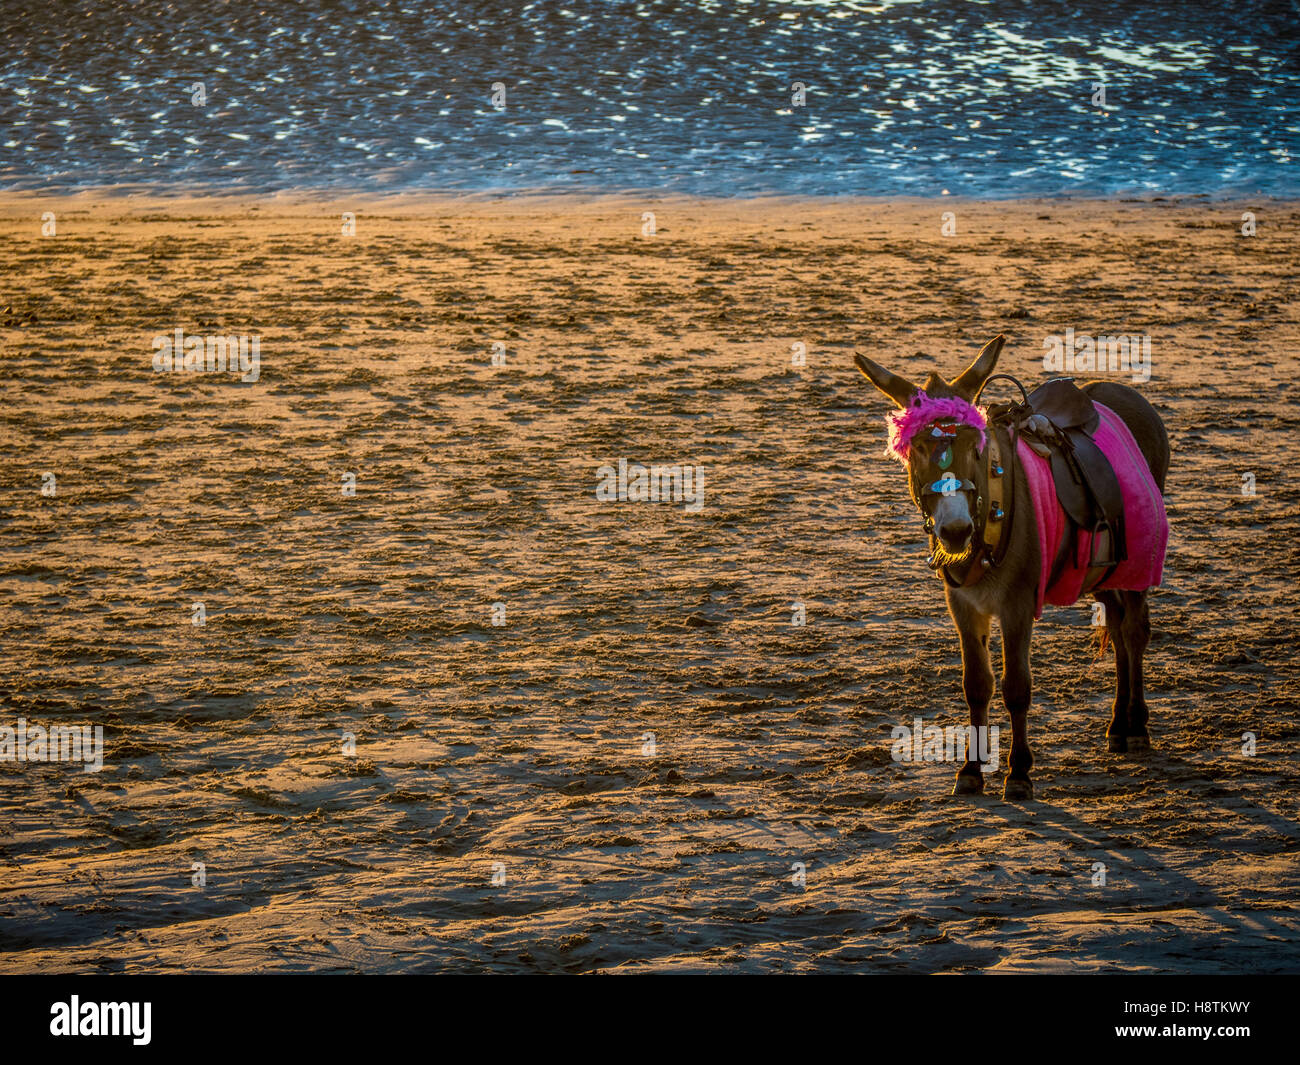 Donkey on beach, Blackpool, Lancashire, UK. Stock Photo